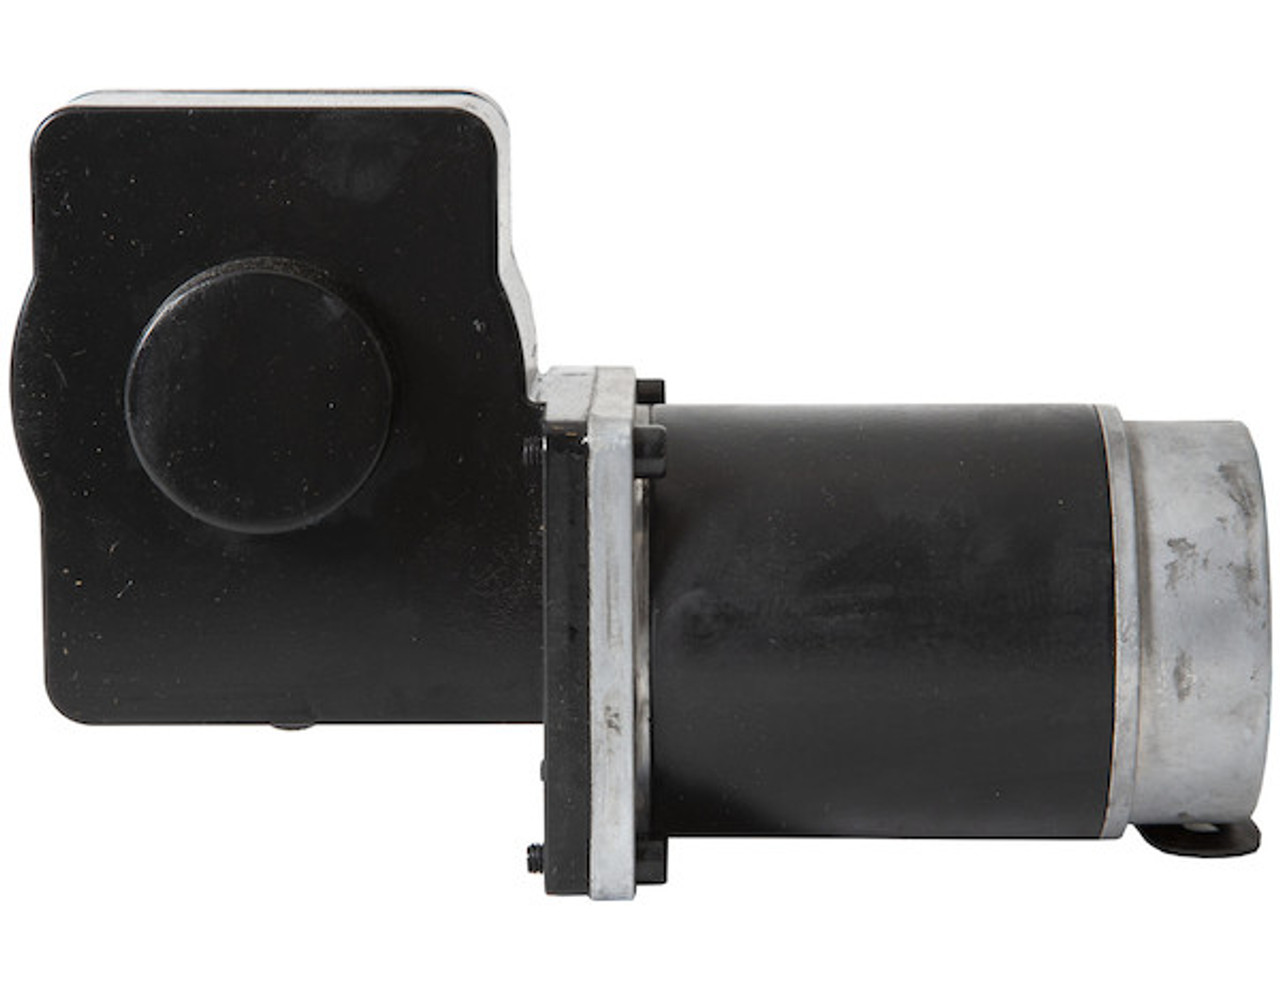 BUYERS 3027293 Replacement Standard Chute Spinner Gear Motor For SaltDogg SHPE 0750-2000 Series Spreaders 2